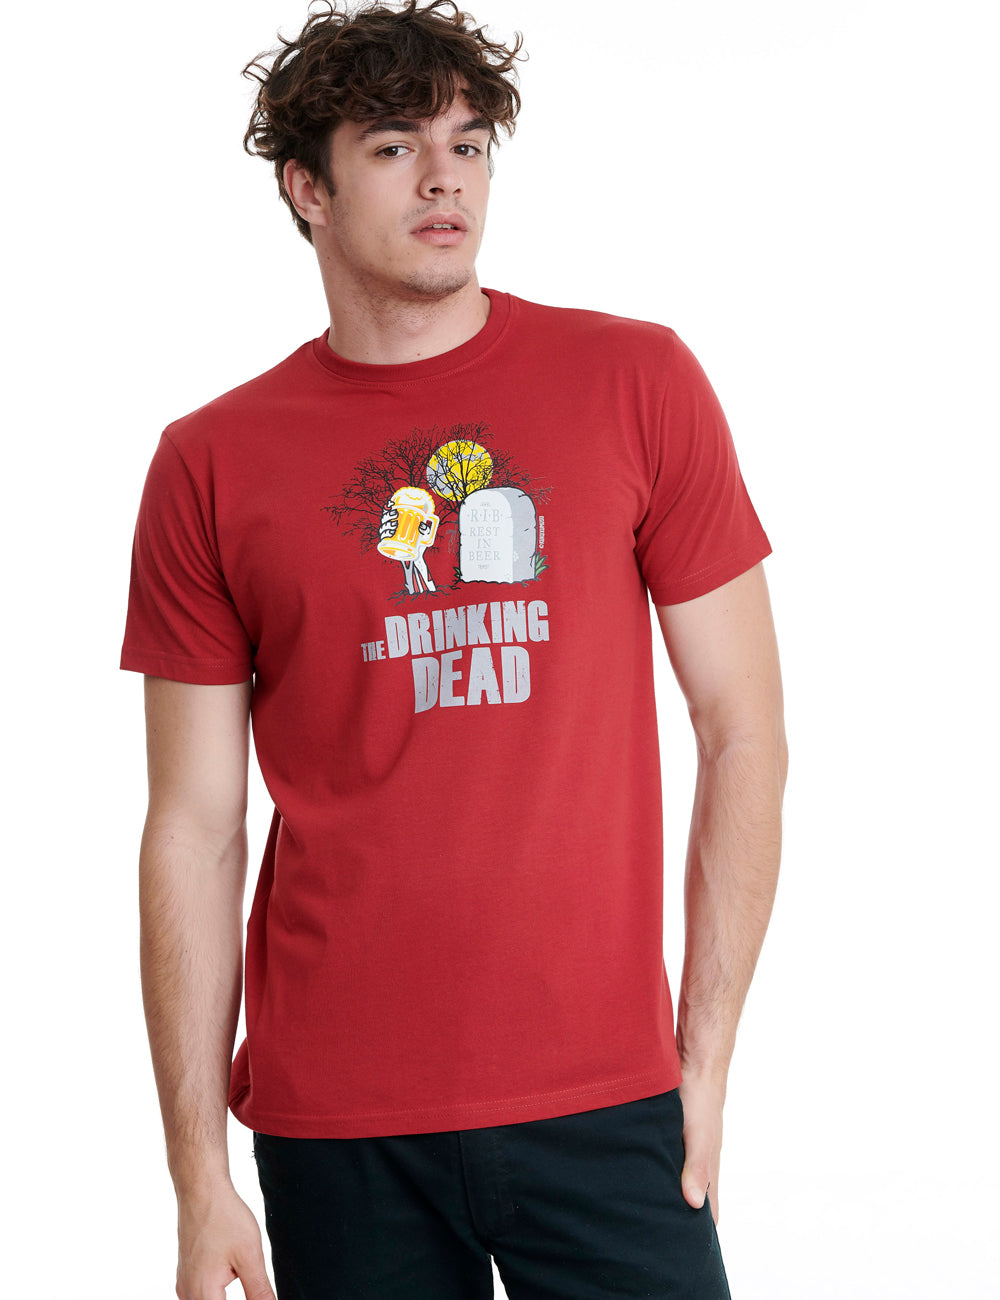 Drinking Dead Mens T-Shirt